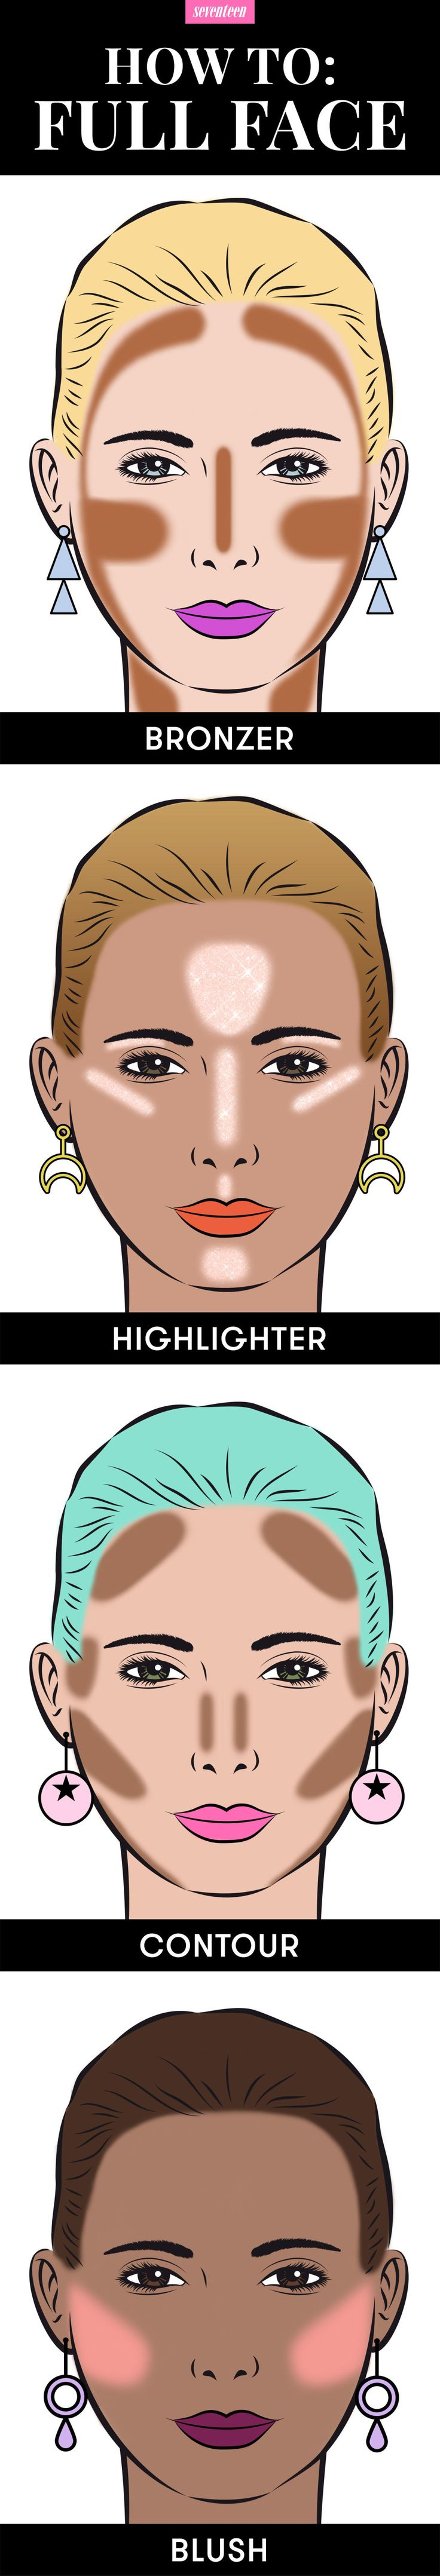 How To Contour Your Face Like Kylie Jenner Even If You've Never Contoured  In Your Life